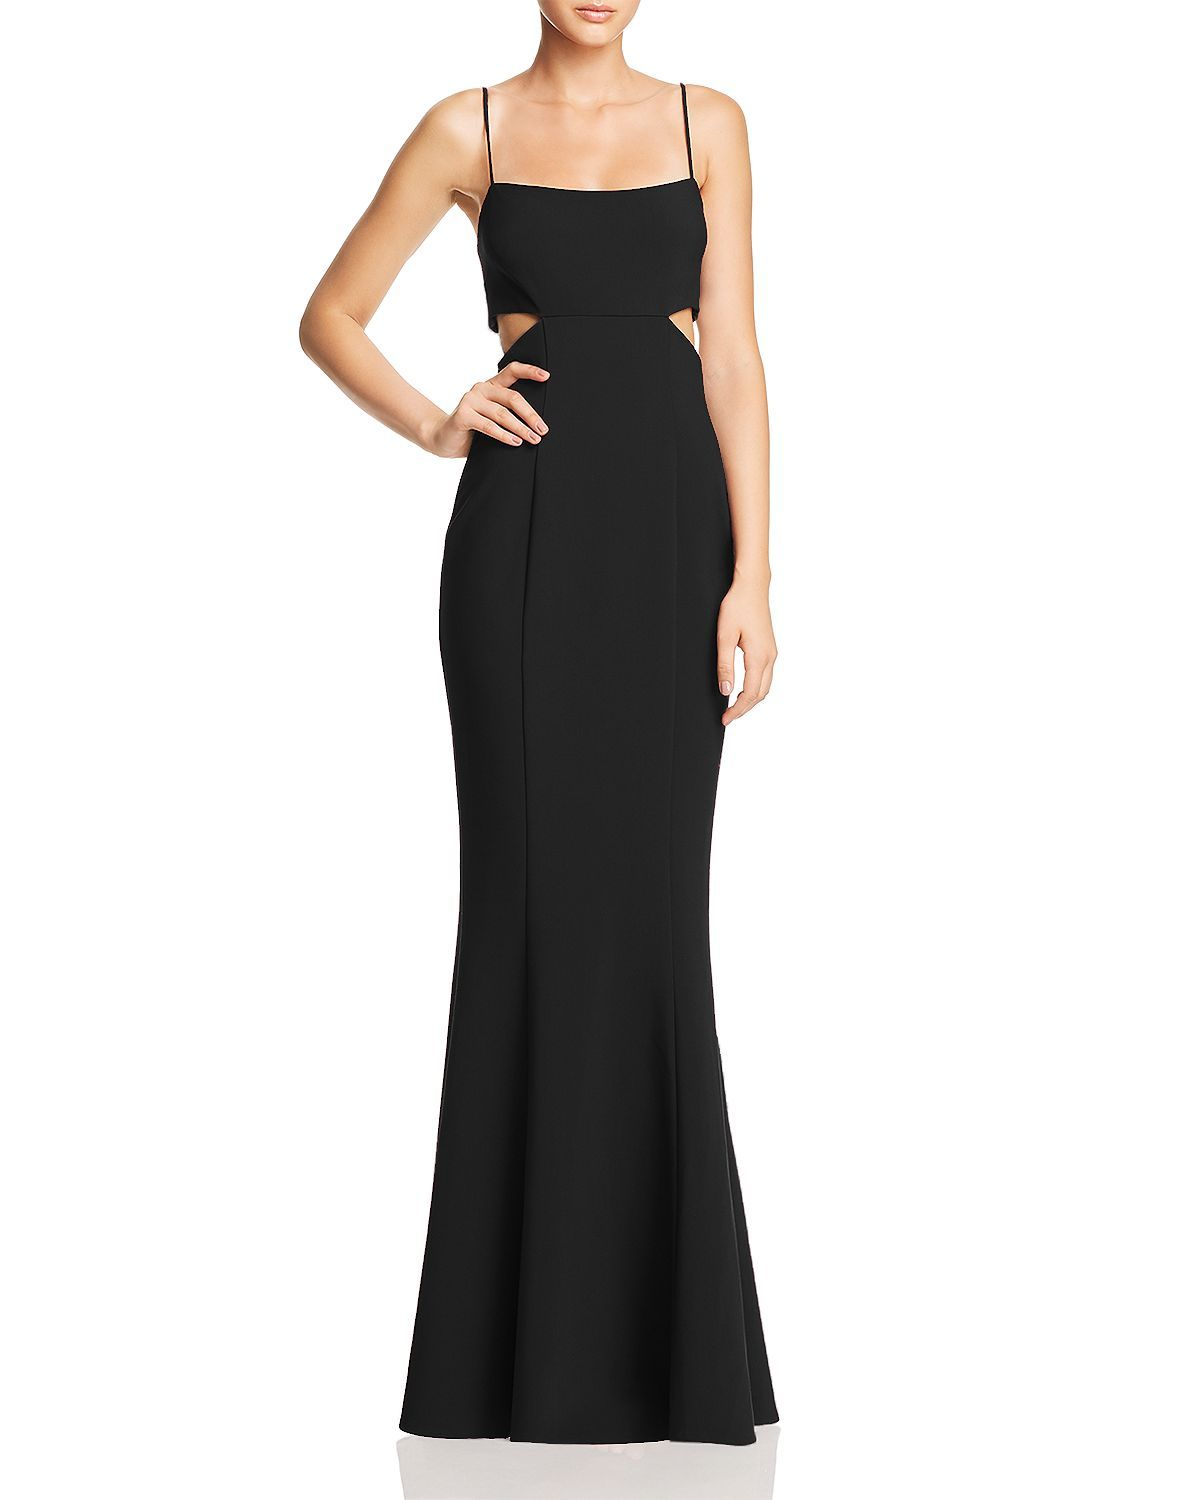 Likely Tamarelli Cutout Gown Women Bloomingdale S Cutout Gown Gowns Black Dress Formal [ 1500 x 1200 Pixel ]